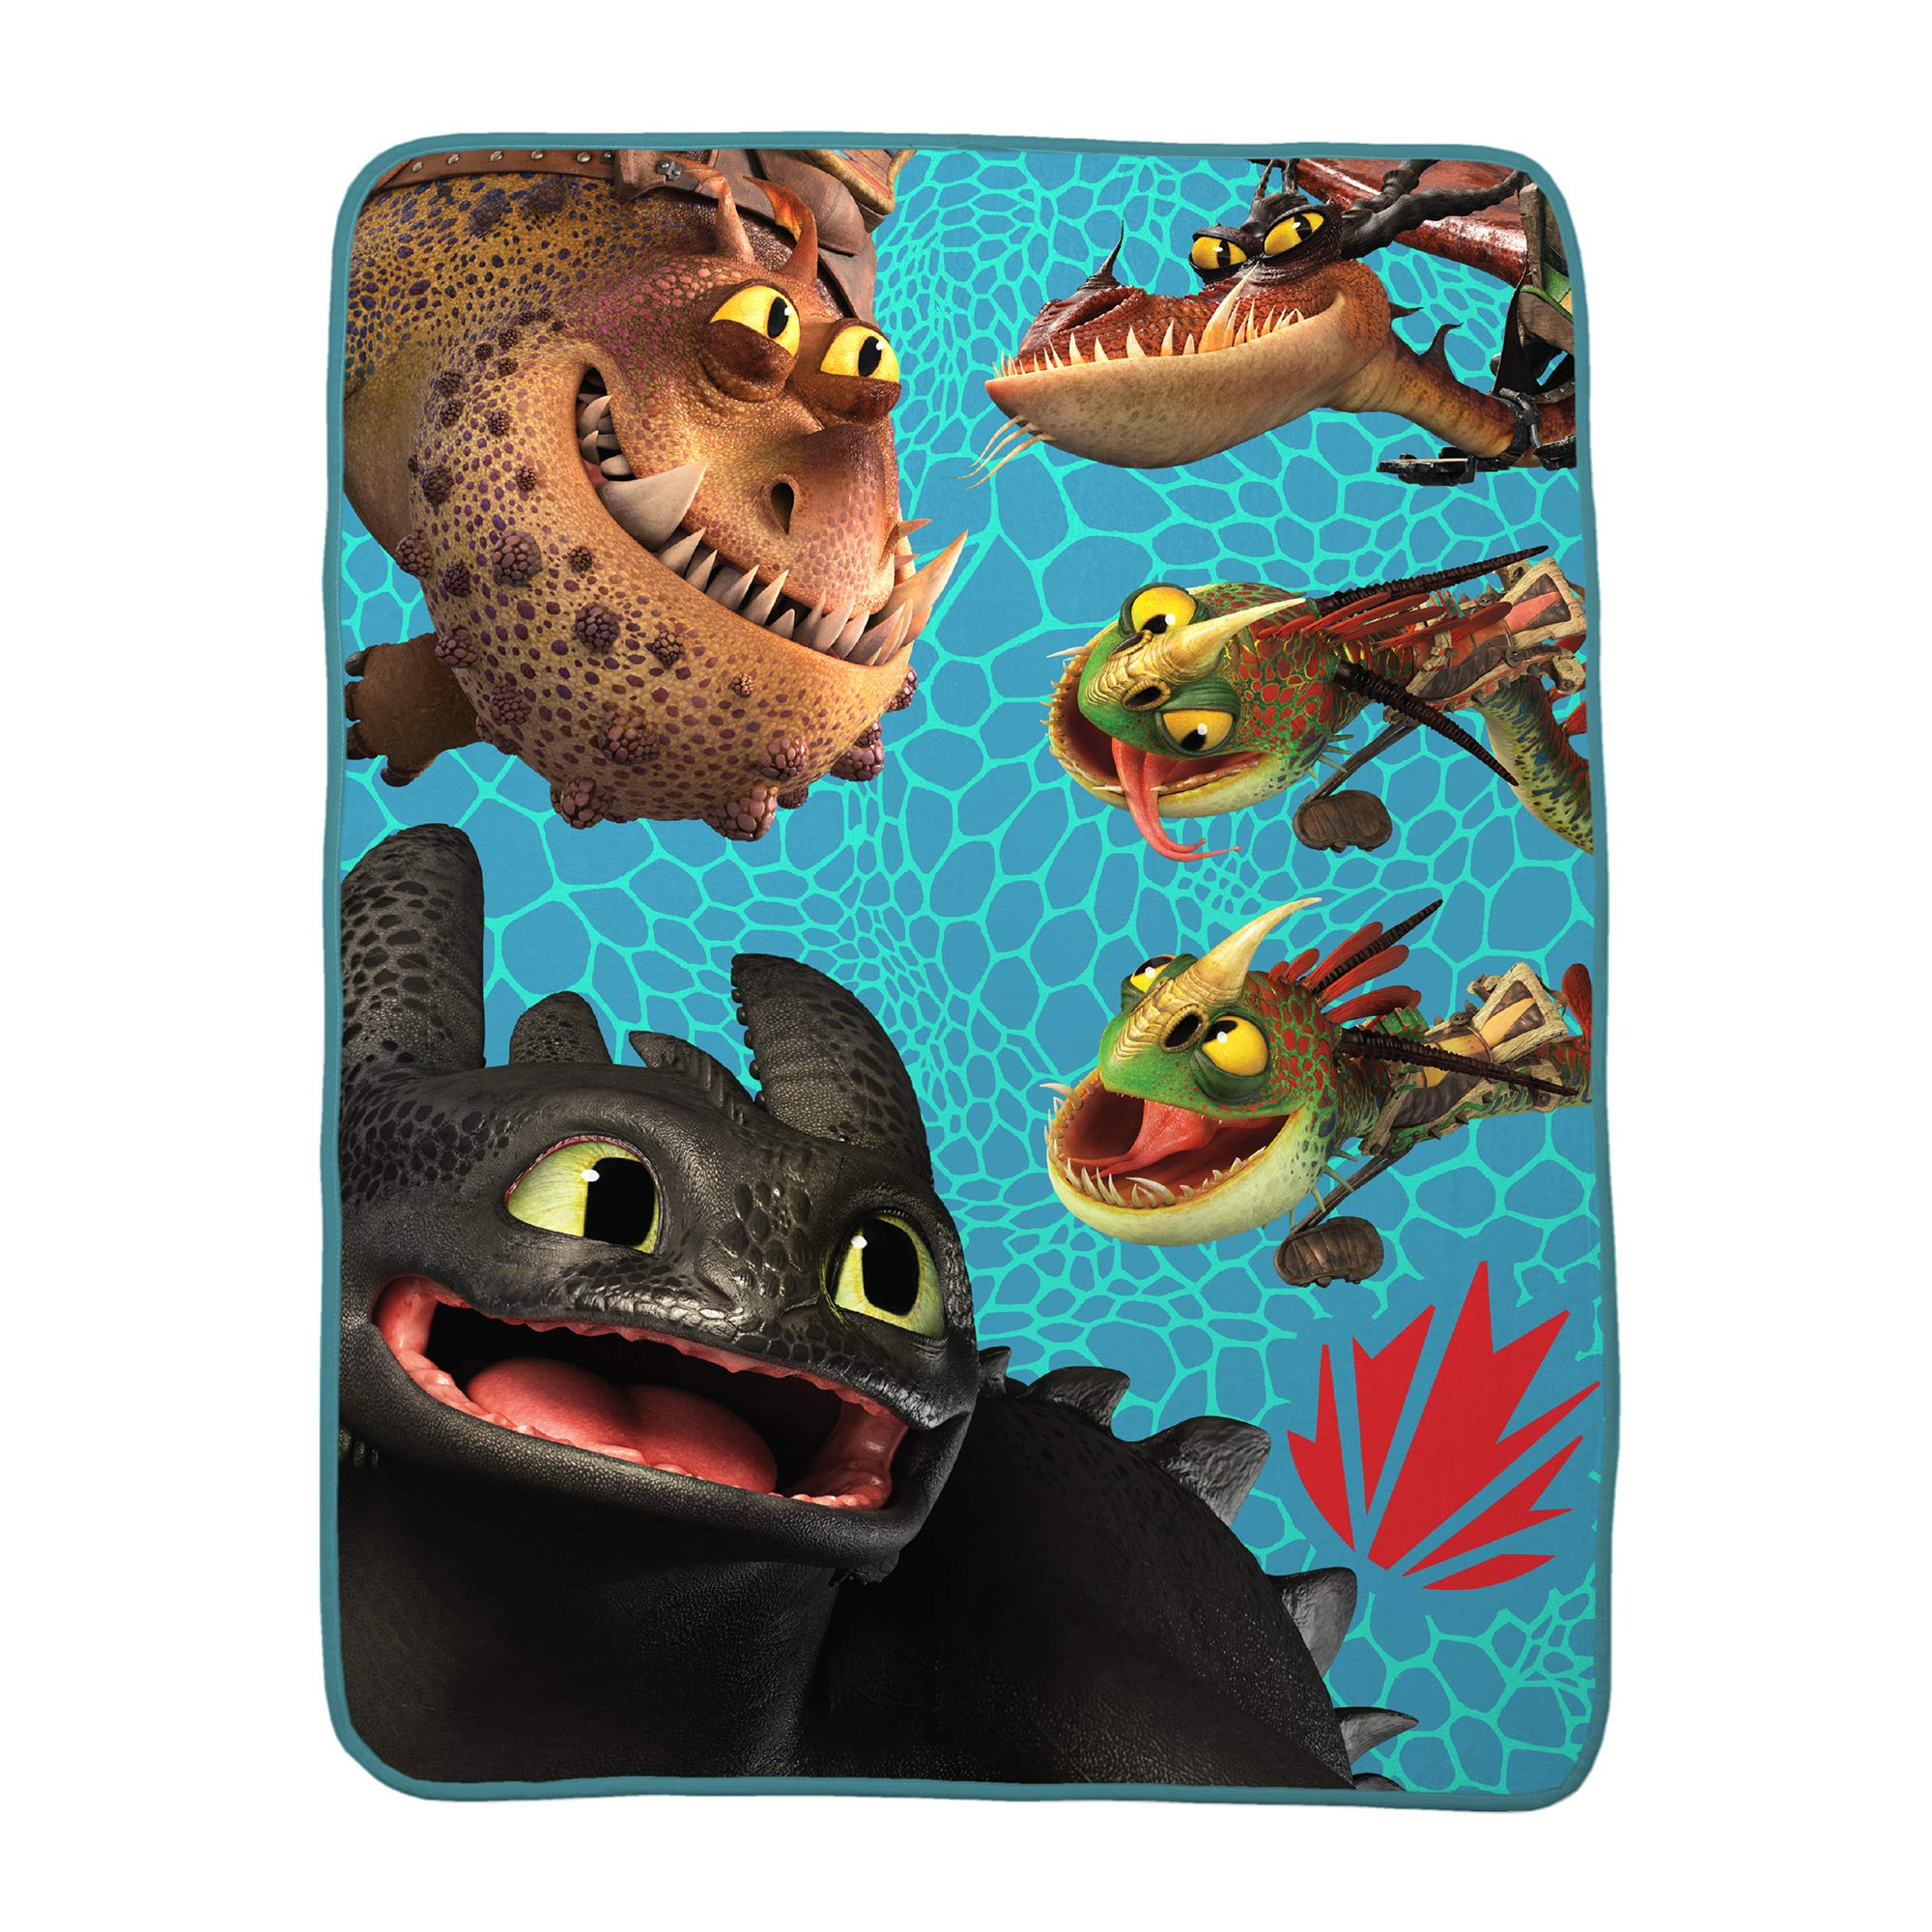 Franco Kids Bedding Super Soft Plush Throw, 46'' x 60'', How to How to Train Your Dragon by Franco (Image #1)